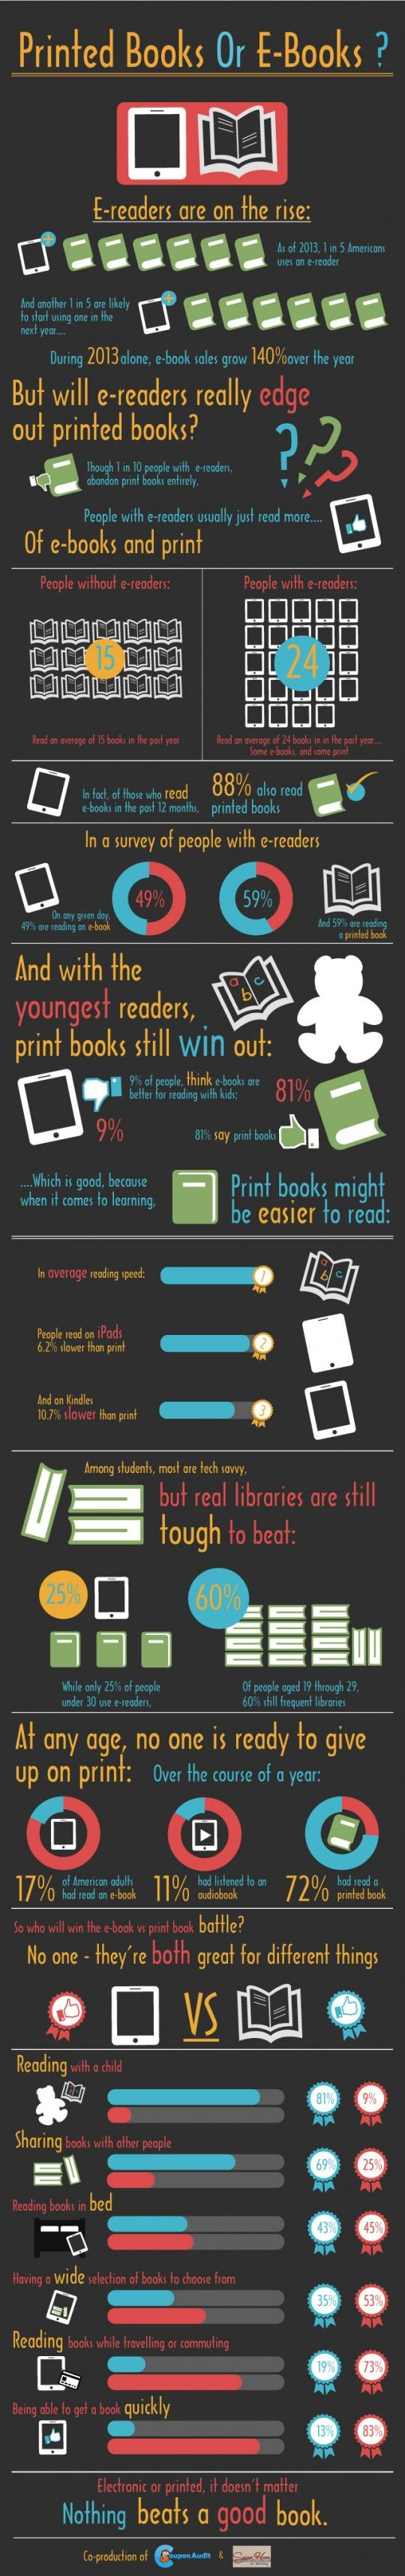 #infographic ⇢ To read or not to read #ebooks / some very interesting NEW facts about reading habits